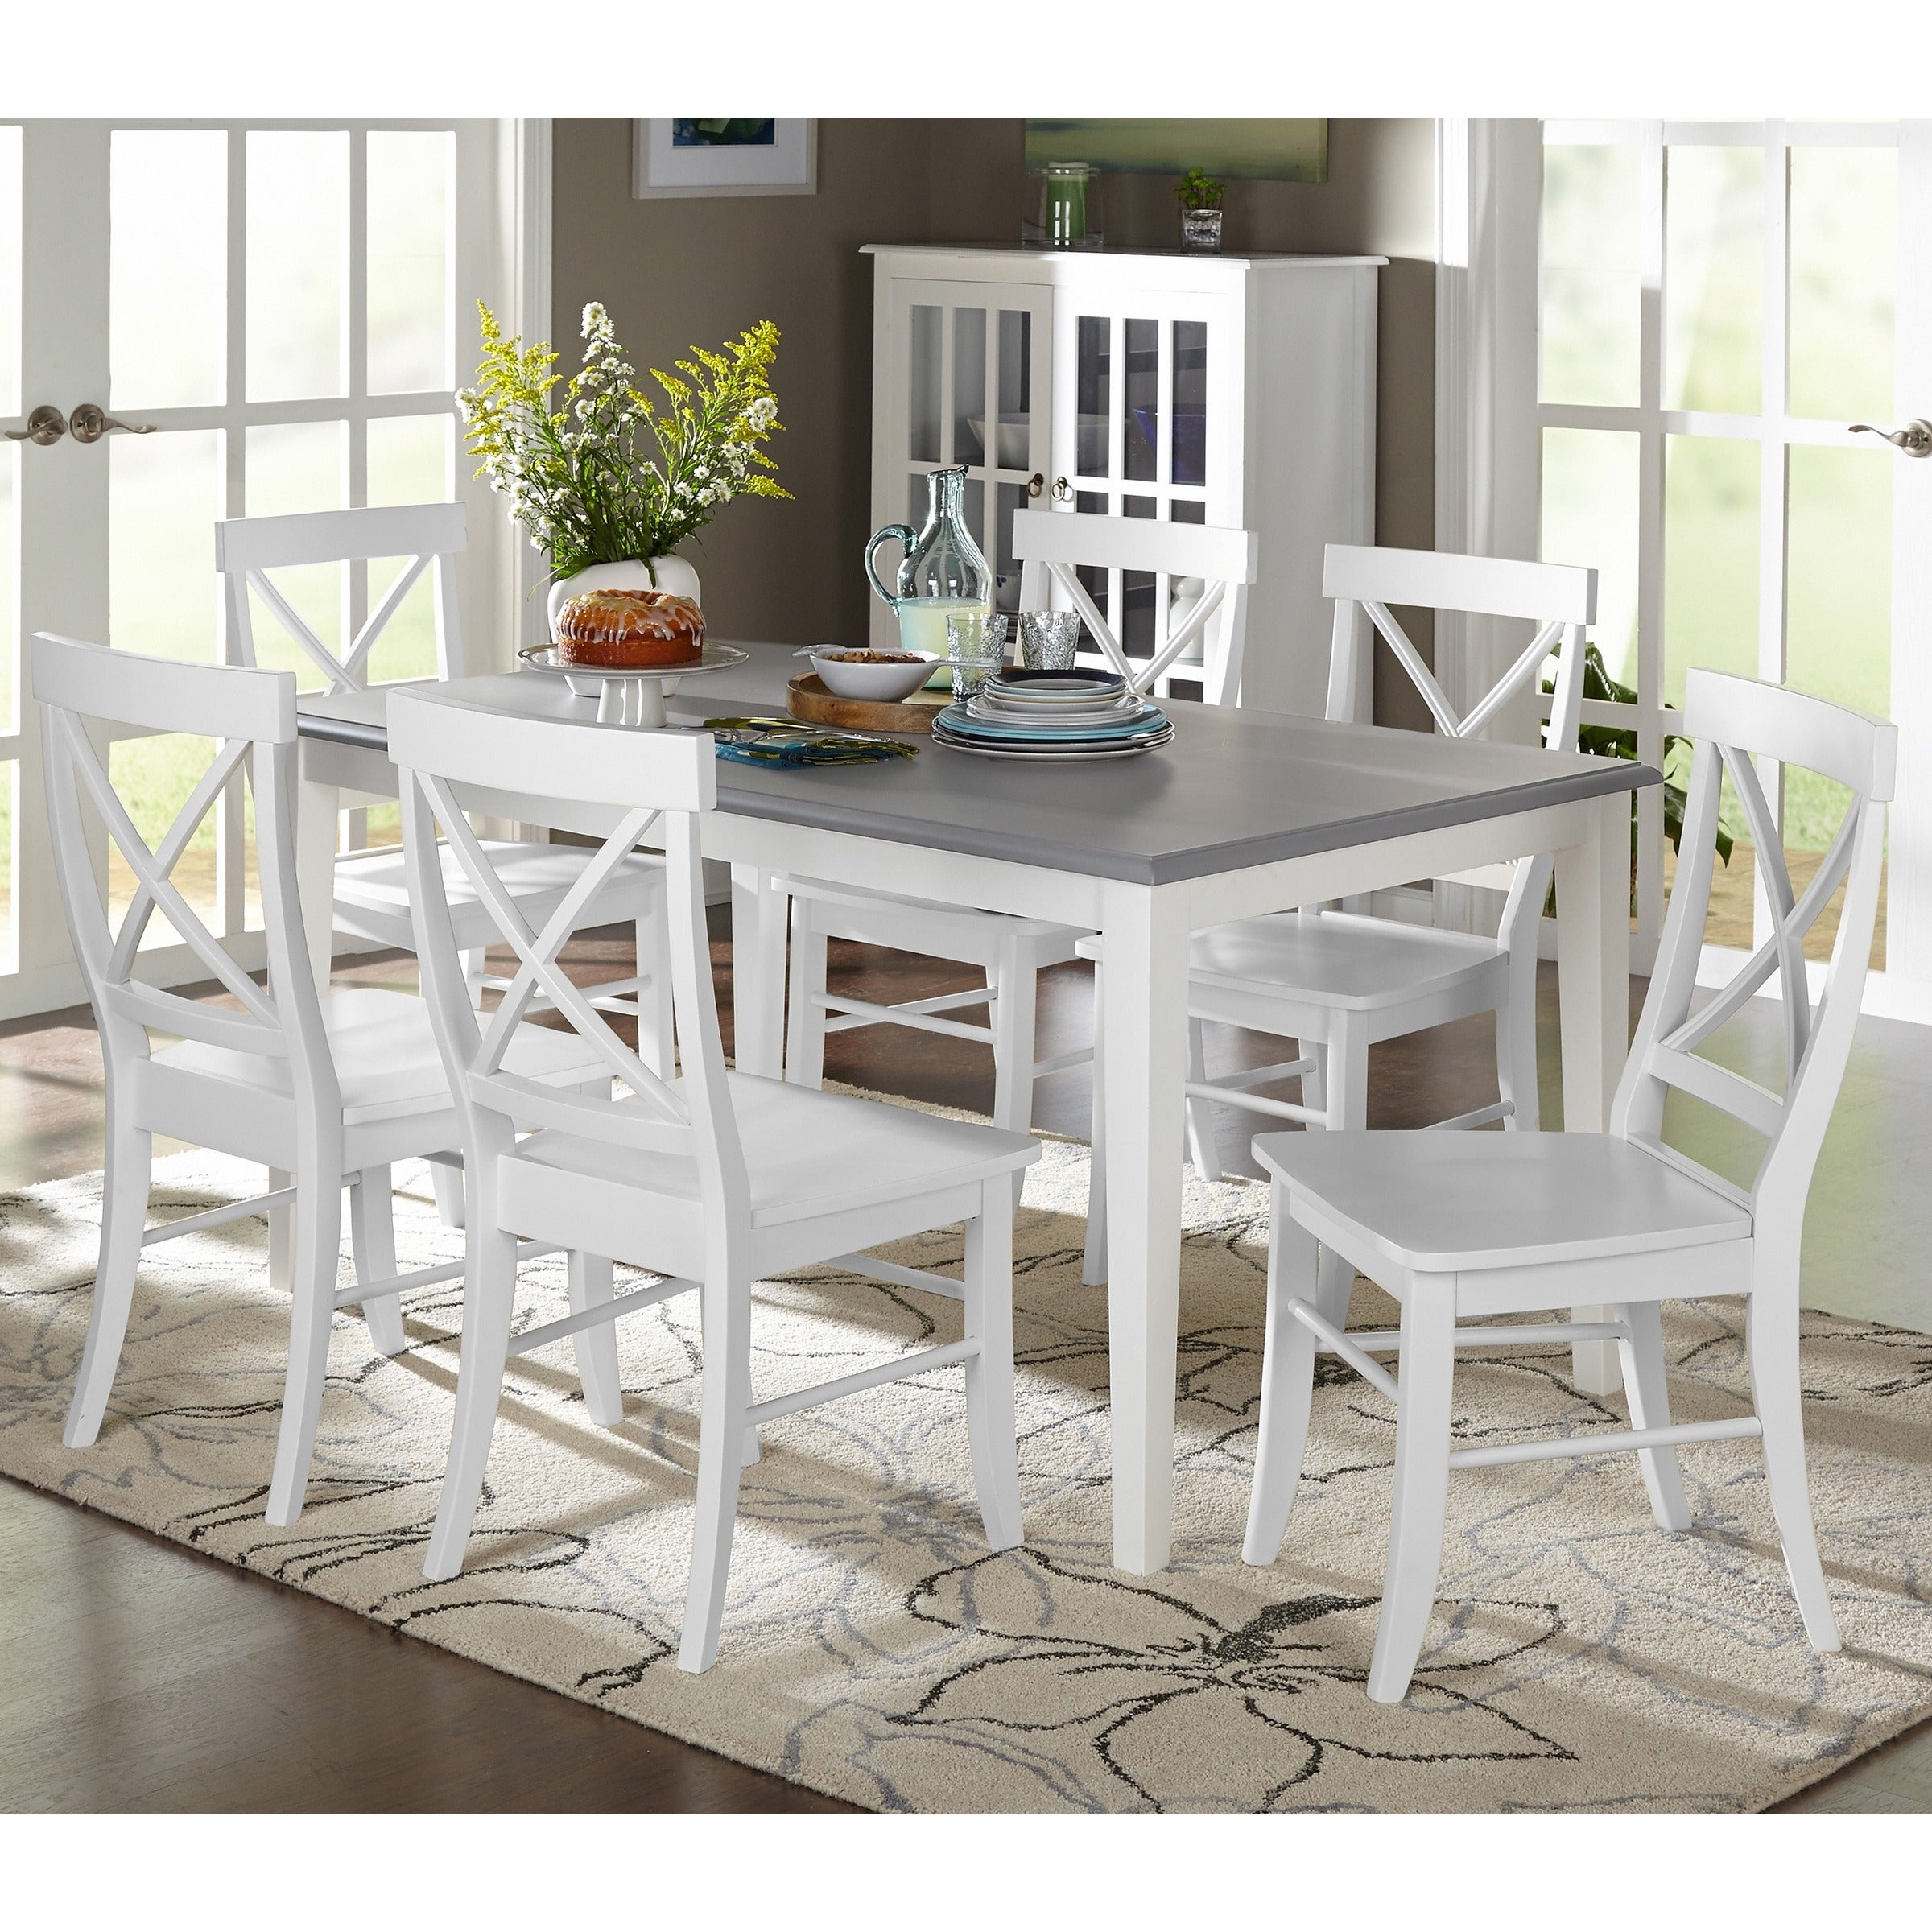 Buy 7 Piece Sets Kitchen & Dining Room Sets Online At Overstock Within Current Autberry 5 Piece Dining Sets (View 7 of 20)